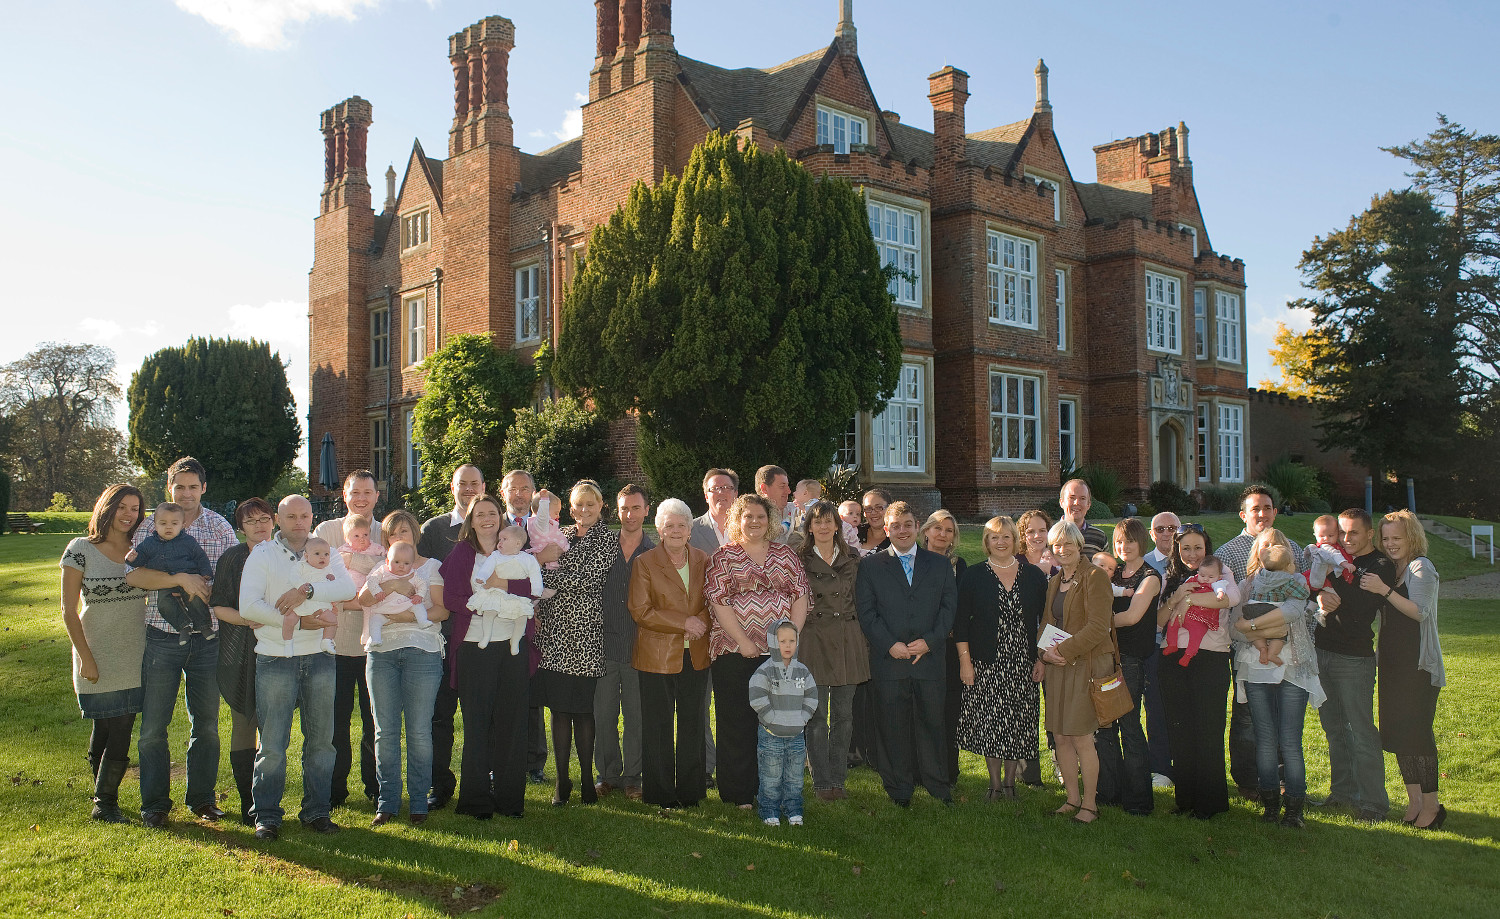 The 2010 Bourn Hall Tea Party